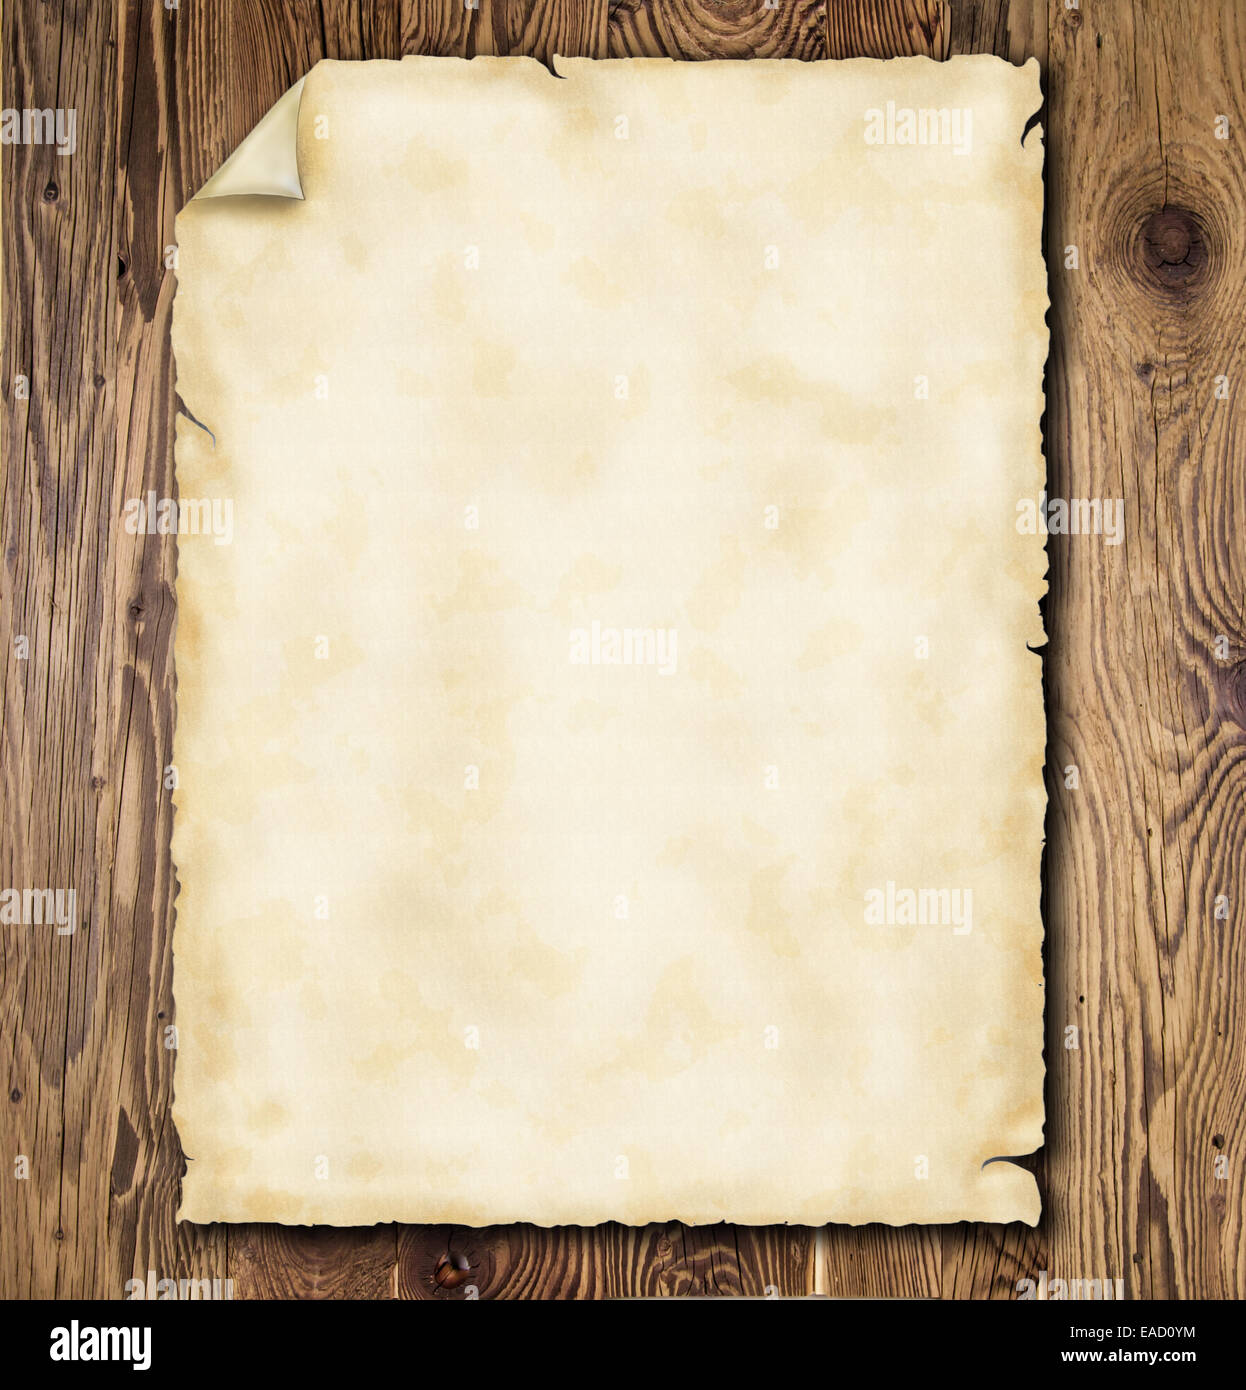 Old grunge paper on wooden planks - Stock Image